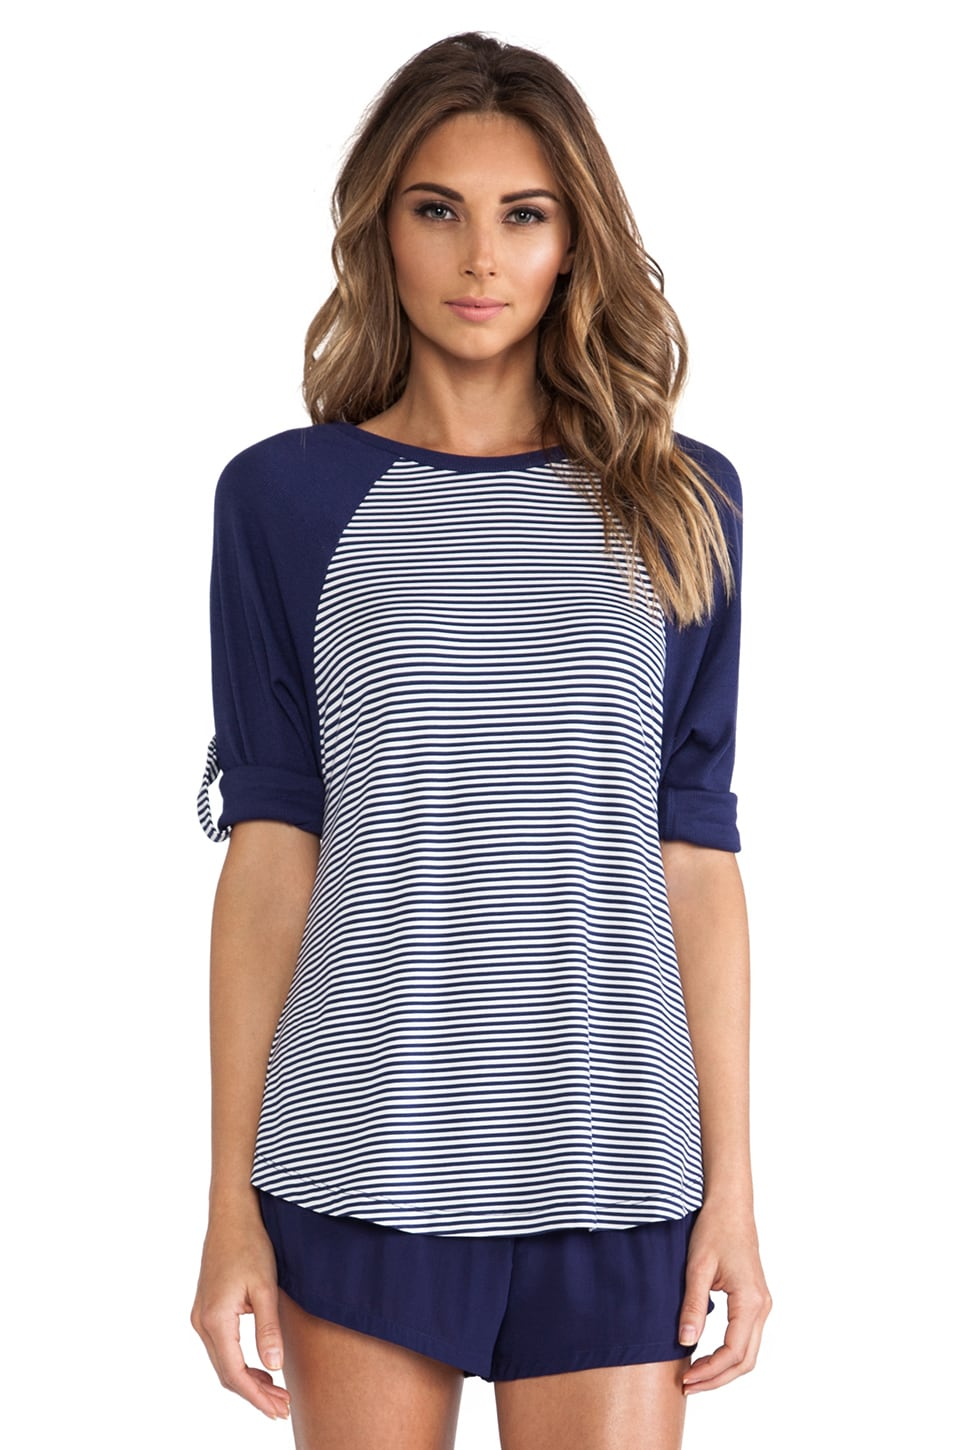 Splendid Dolman California Dreamin' Raglan in Navy Mini Stripe